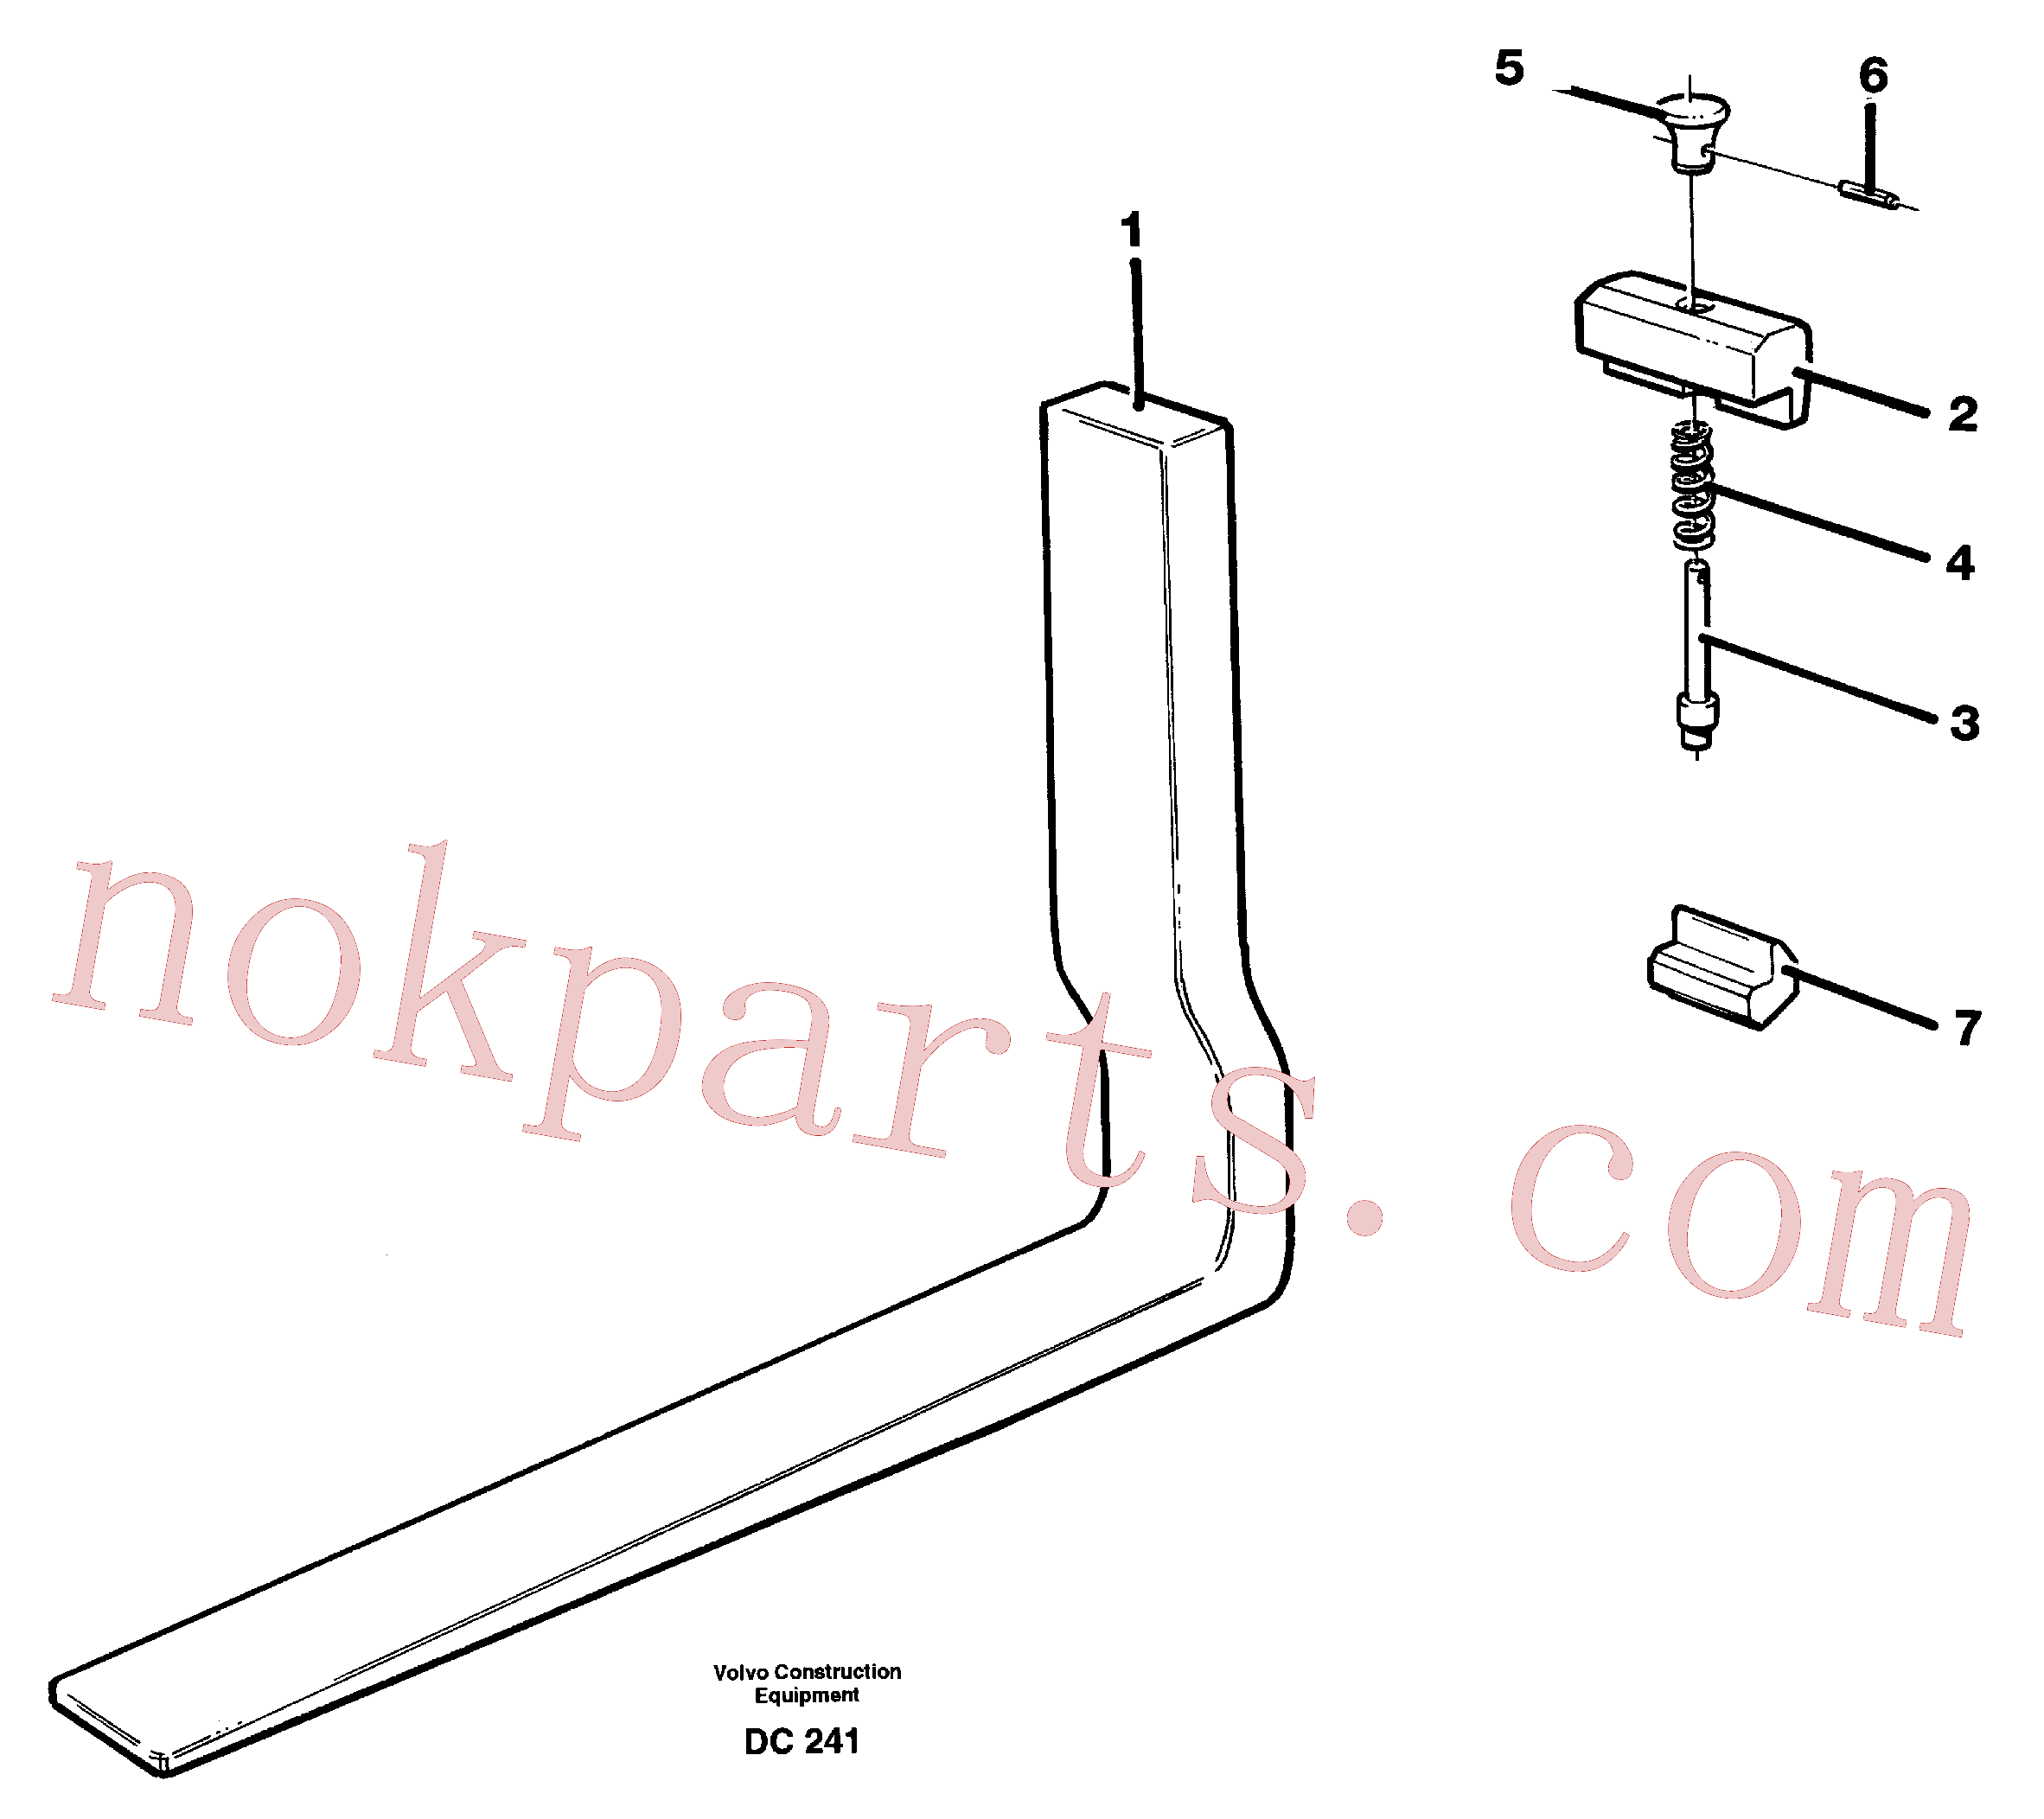 VOE11111317 for Volvo Fork tines(DC241 assembly)